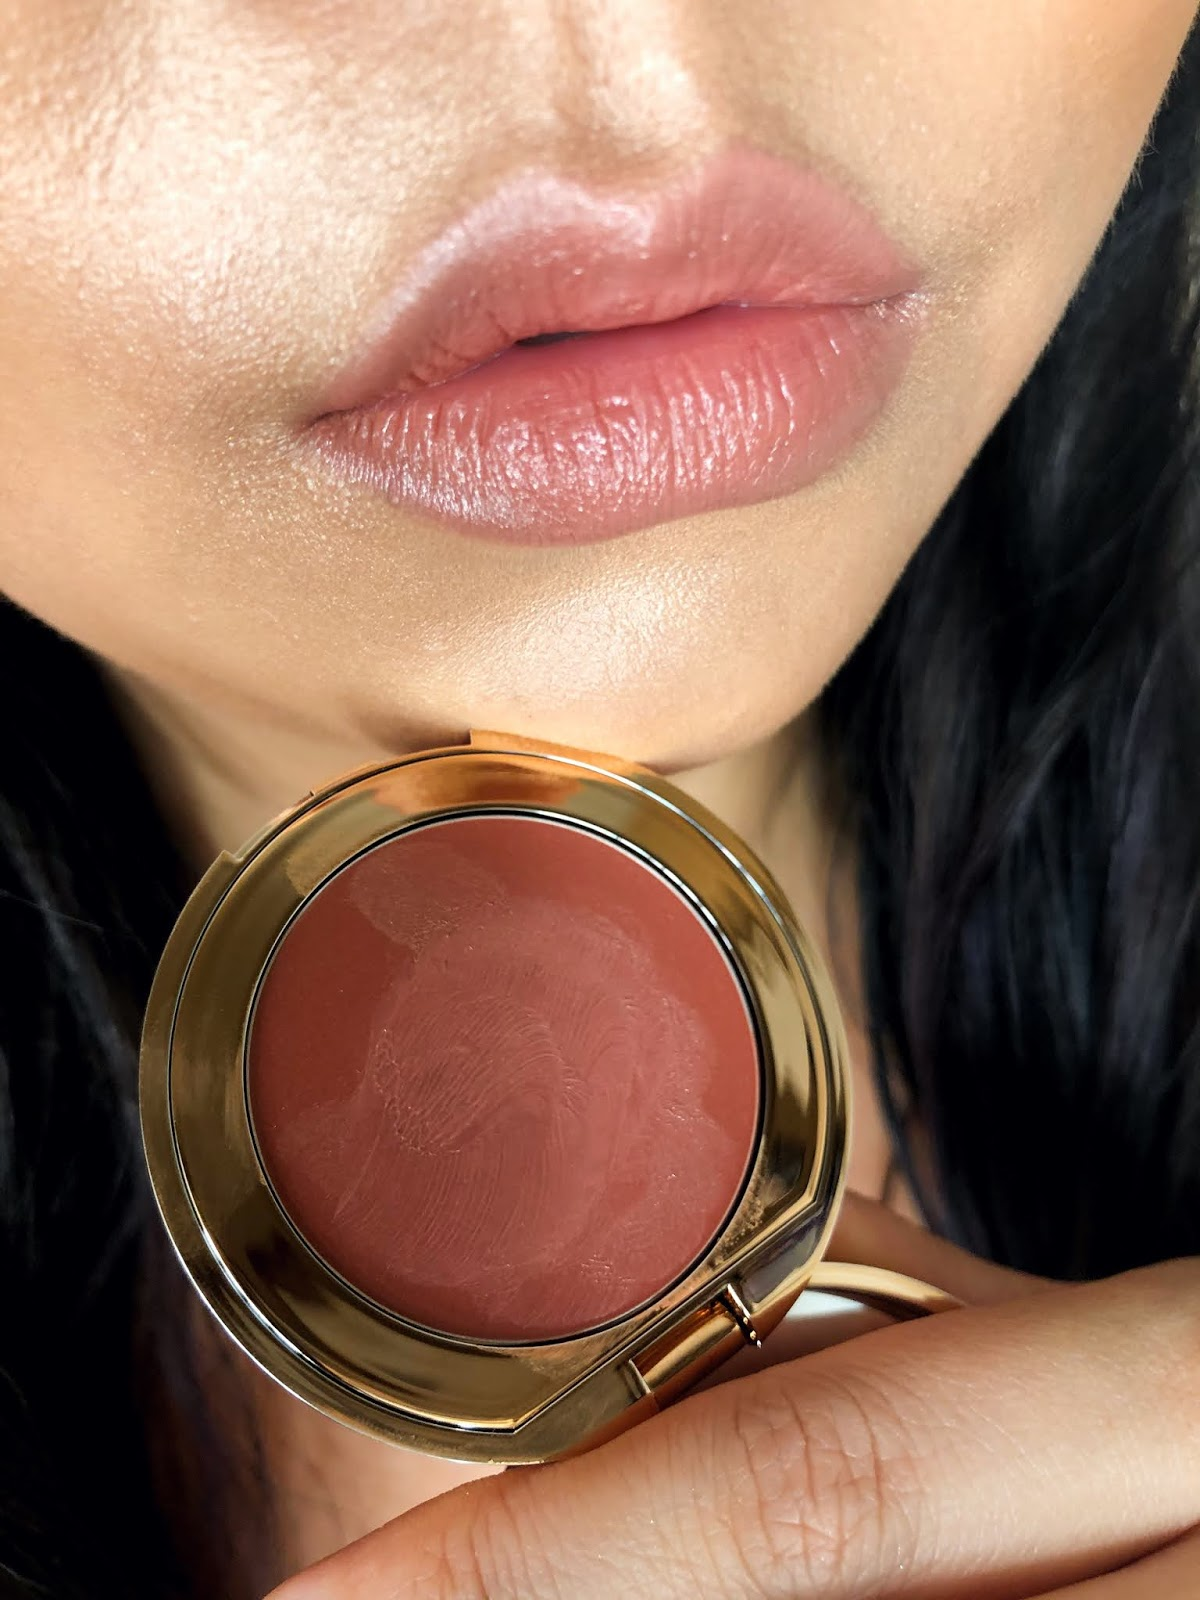 Charlotte Tilbury Pillow Talk Lip & Cheek Glow Review and Swatches